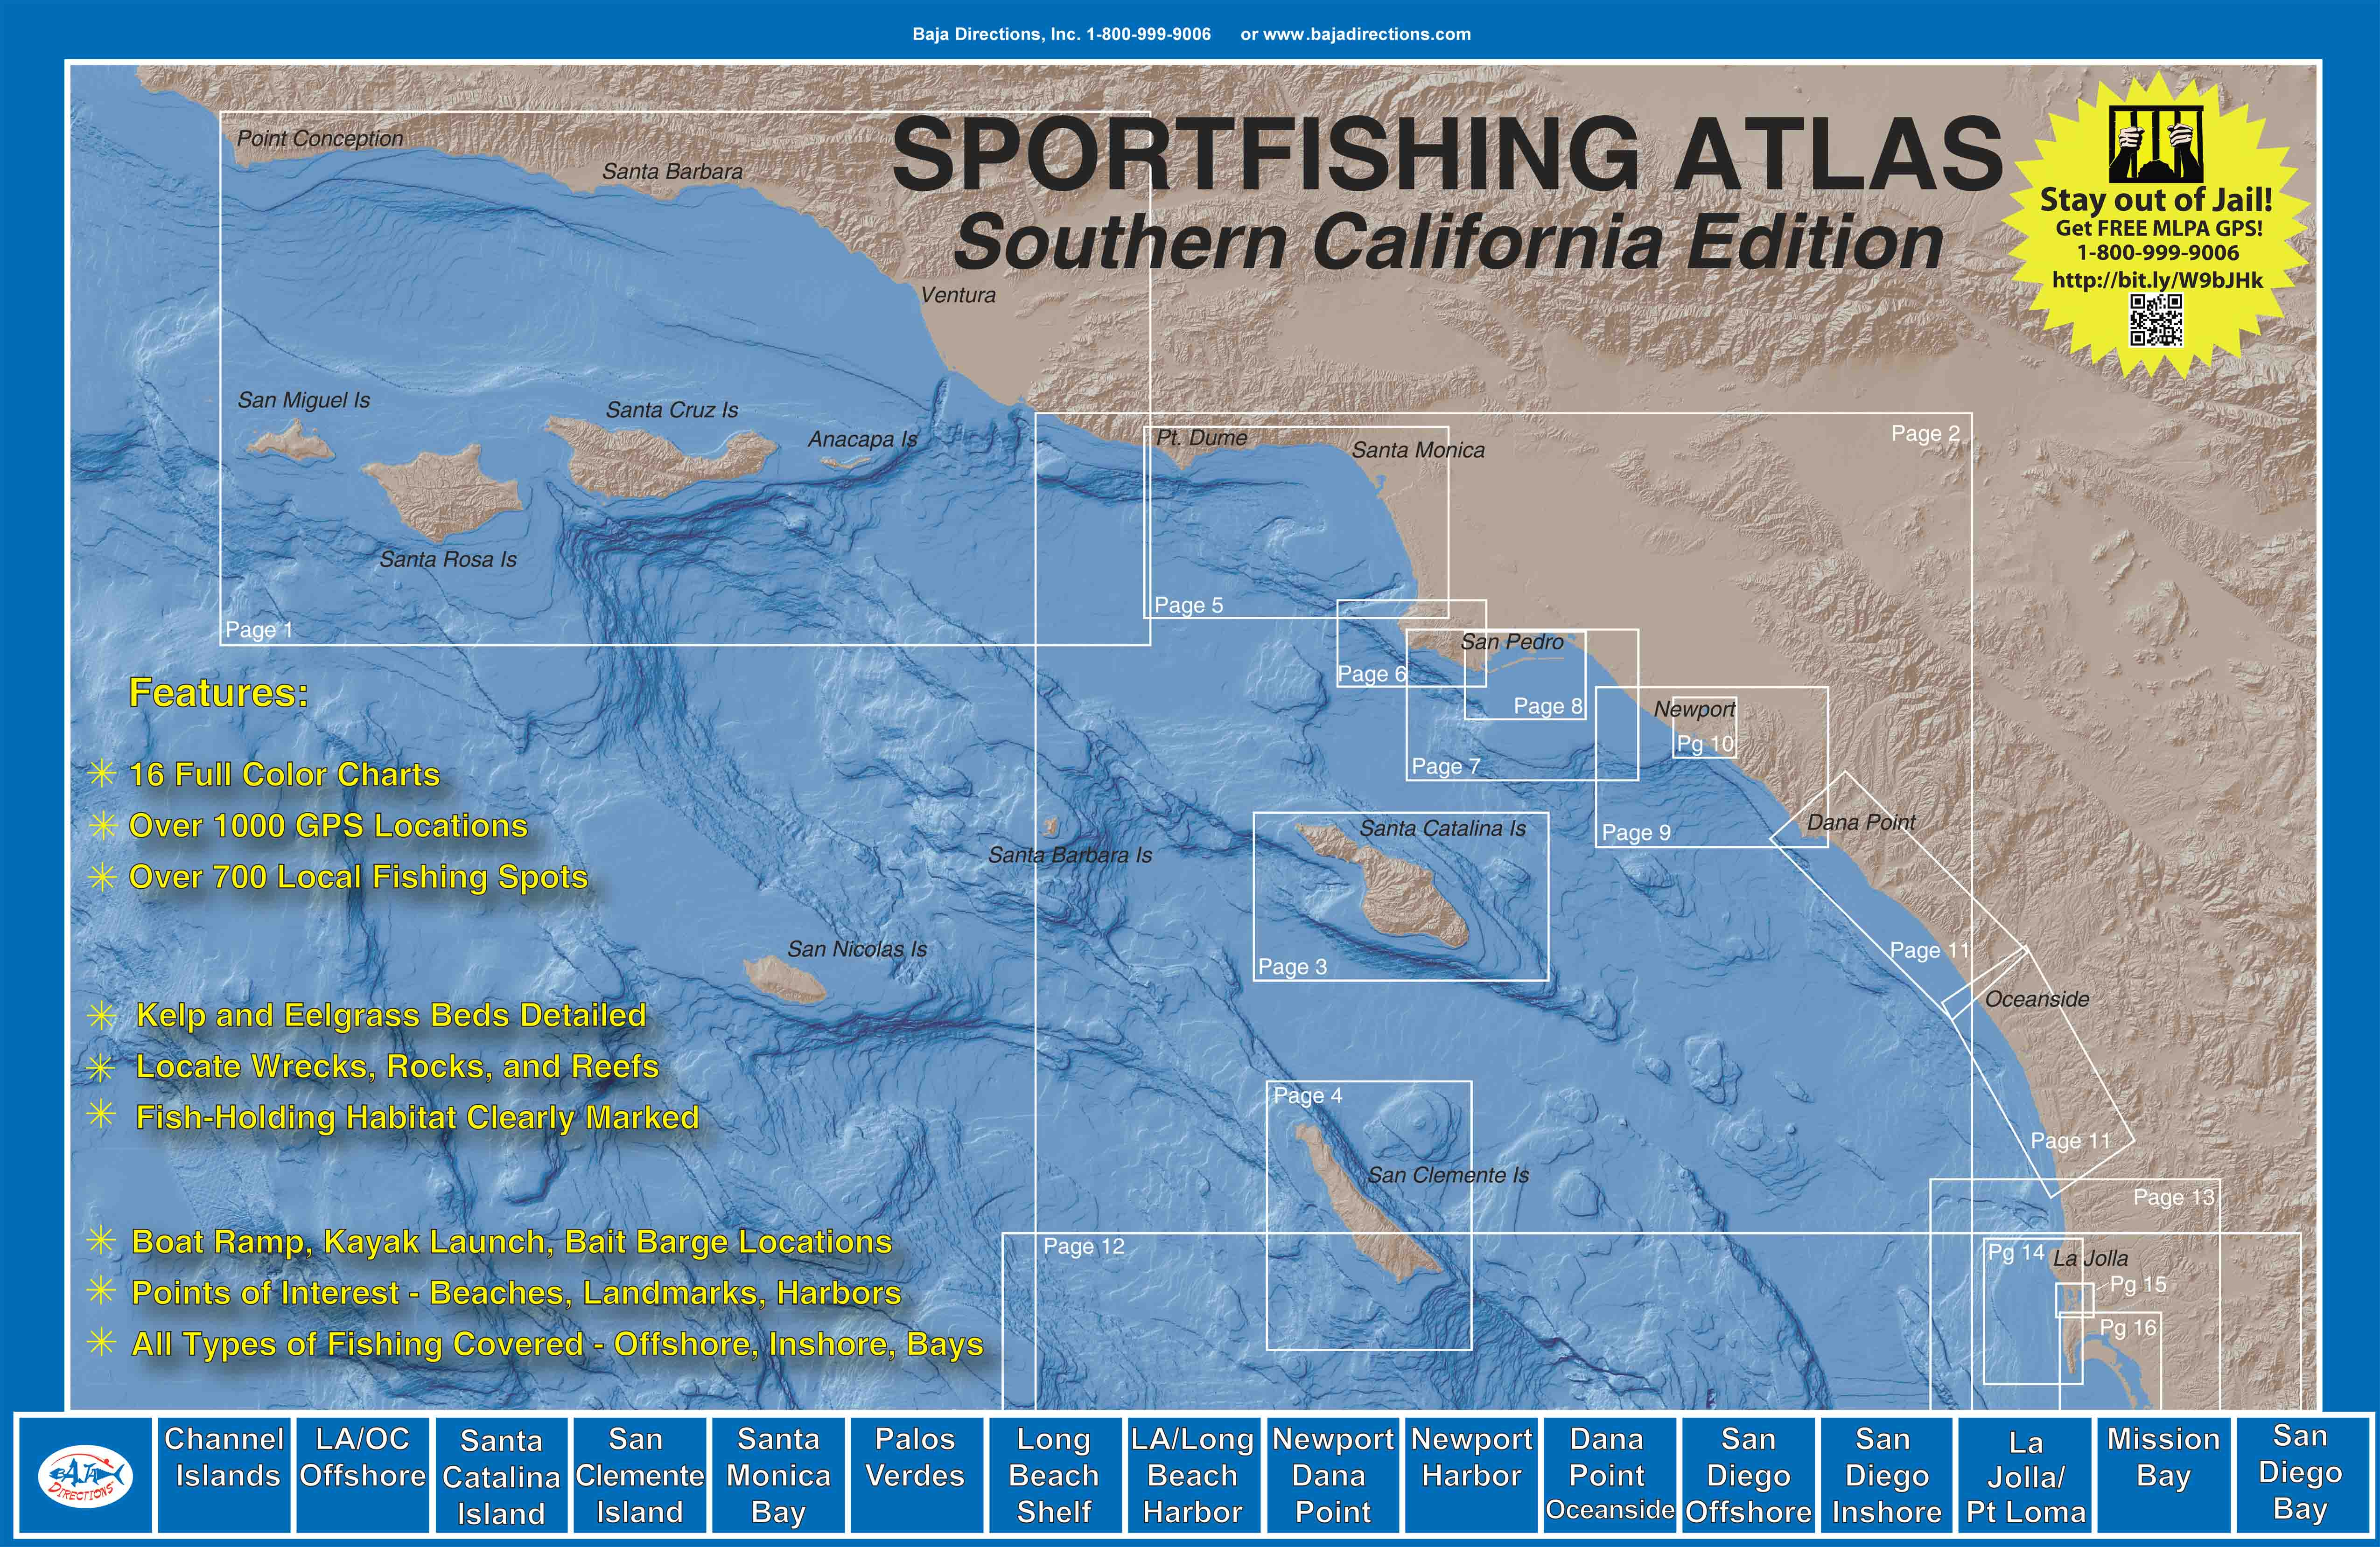 San Diego Offshore Banks - Baja Directions - California Ocean Fishing Map